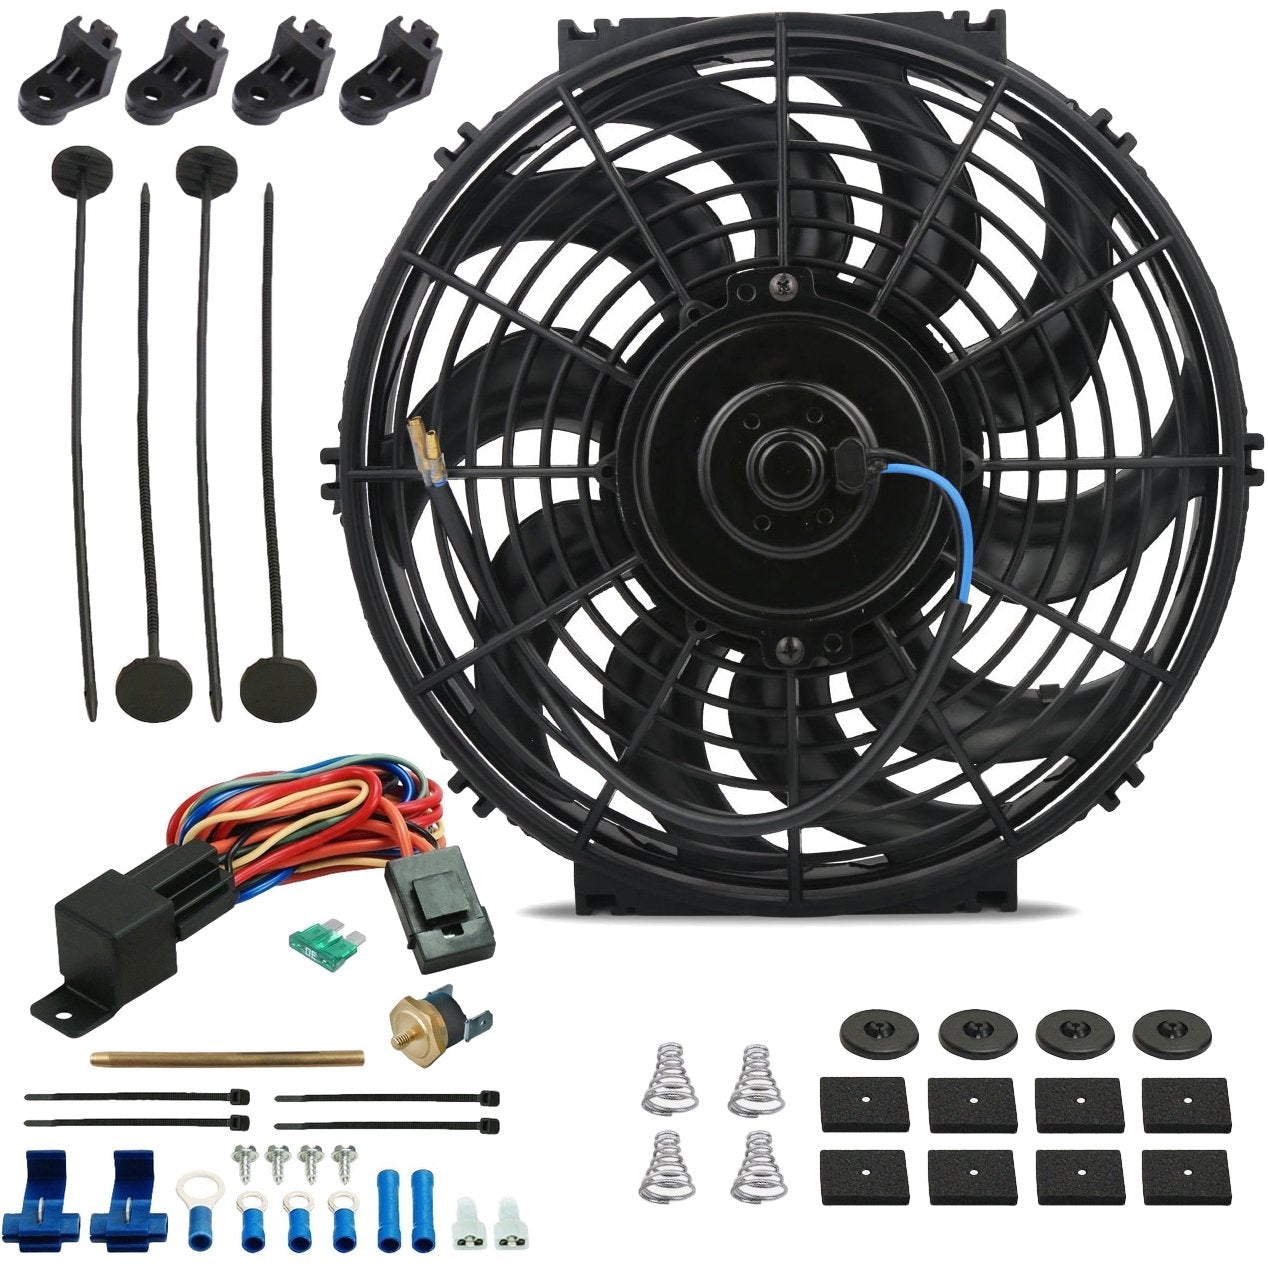 "12"" Inch 120w Electric Cooling Fan 12 Volt Push-In Radiator Fin Probe Thermostat Temp Switch Kit-Single Electric Fans-American Volt-3"" Inch-140'F On - 125'F Off-American Volt"